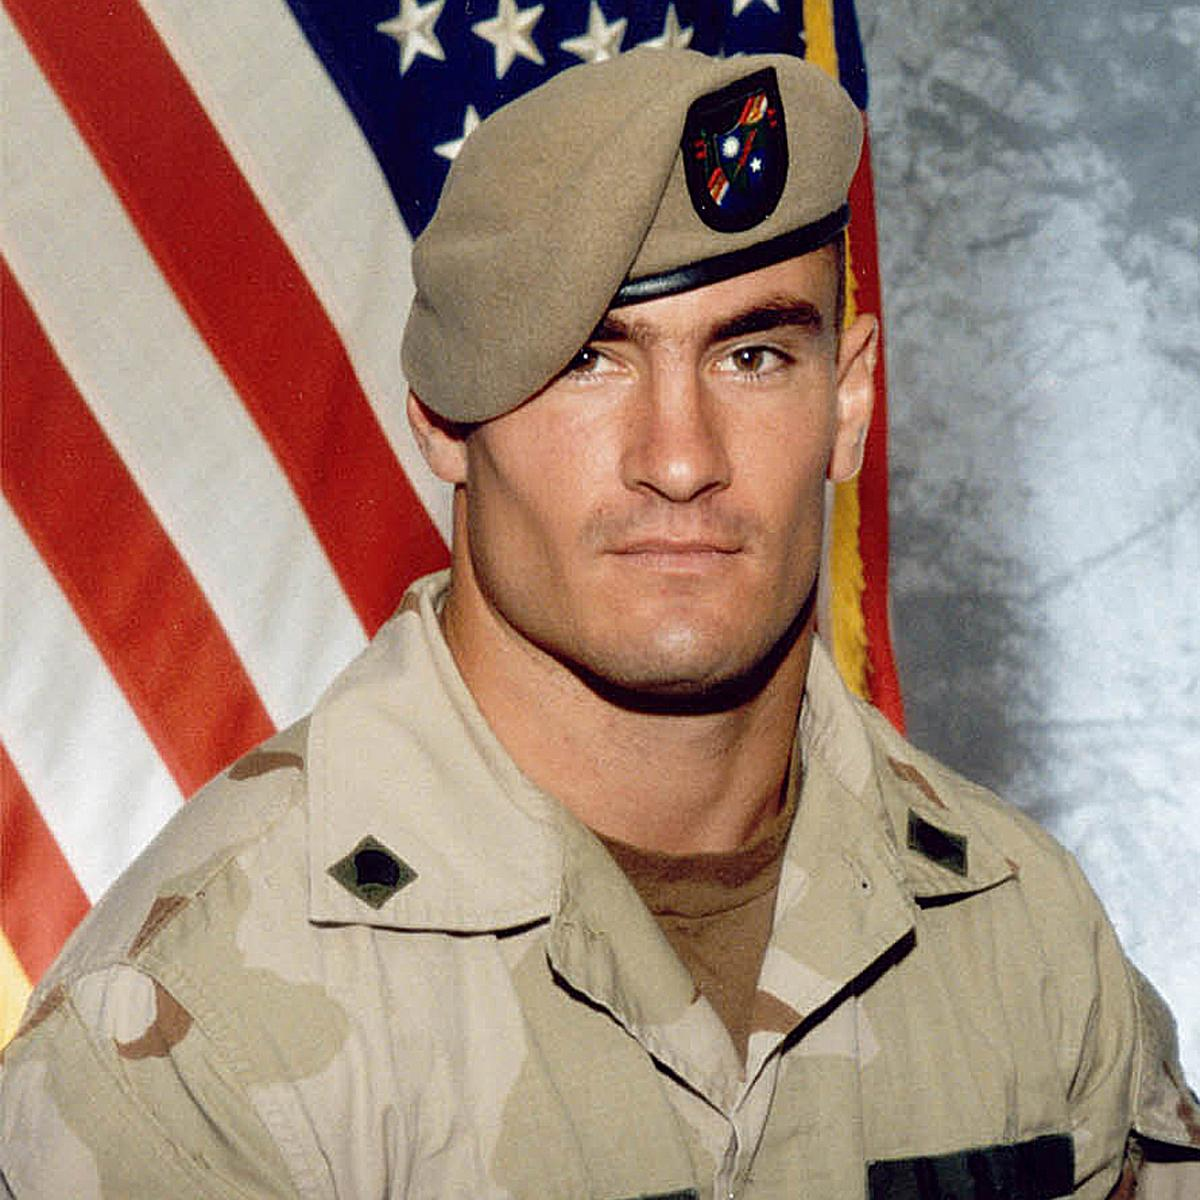 #Salute true hero ... RT @nfl: Today, Army Ranger Pat Tillman would have celebrated his 38th birthday. http://t.co/bQeq4ustZd